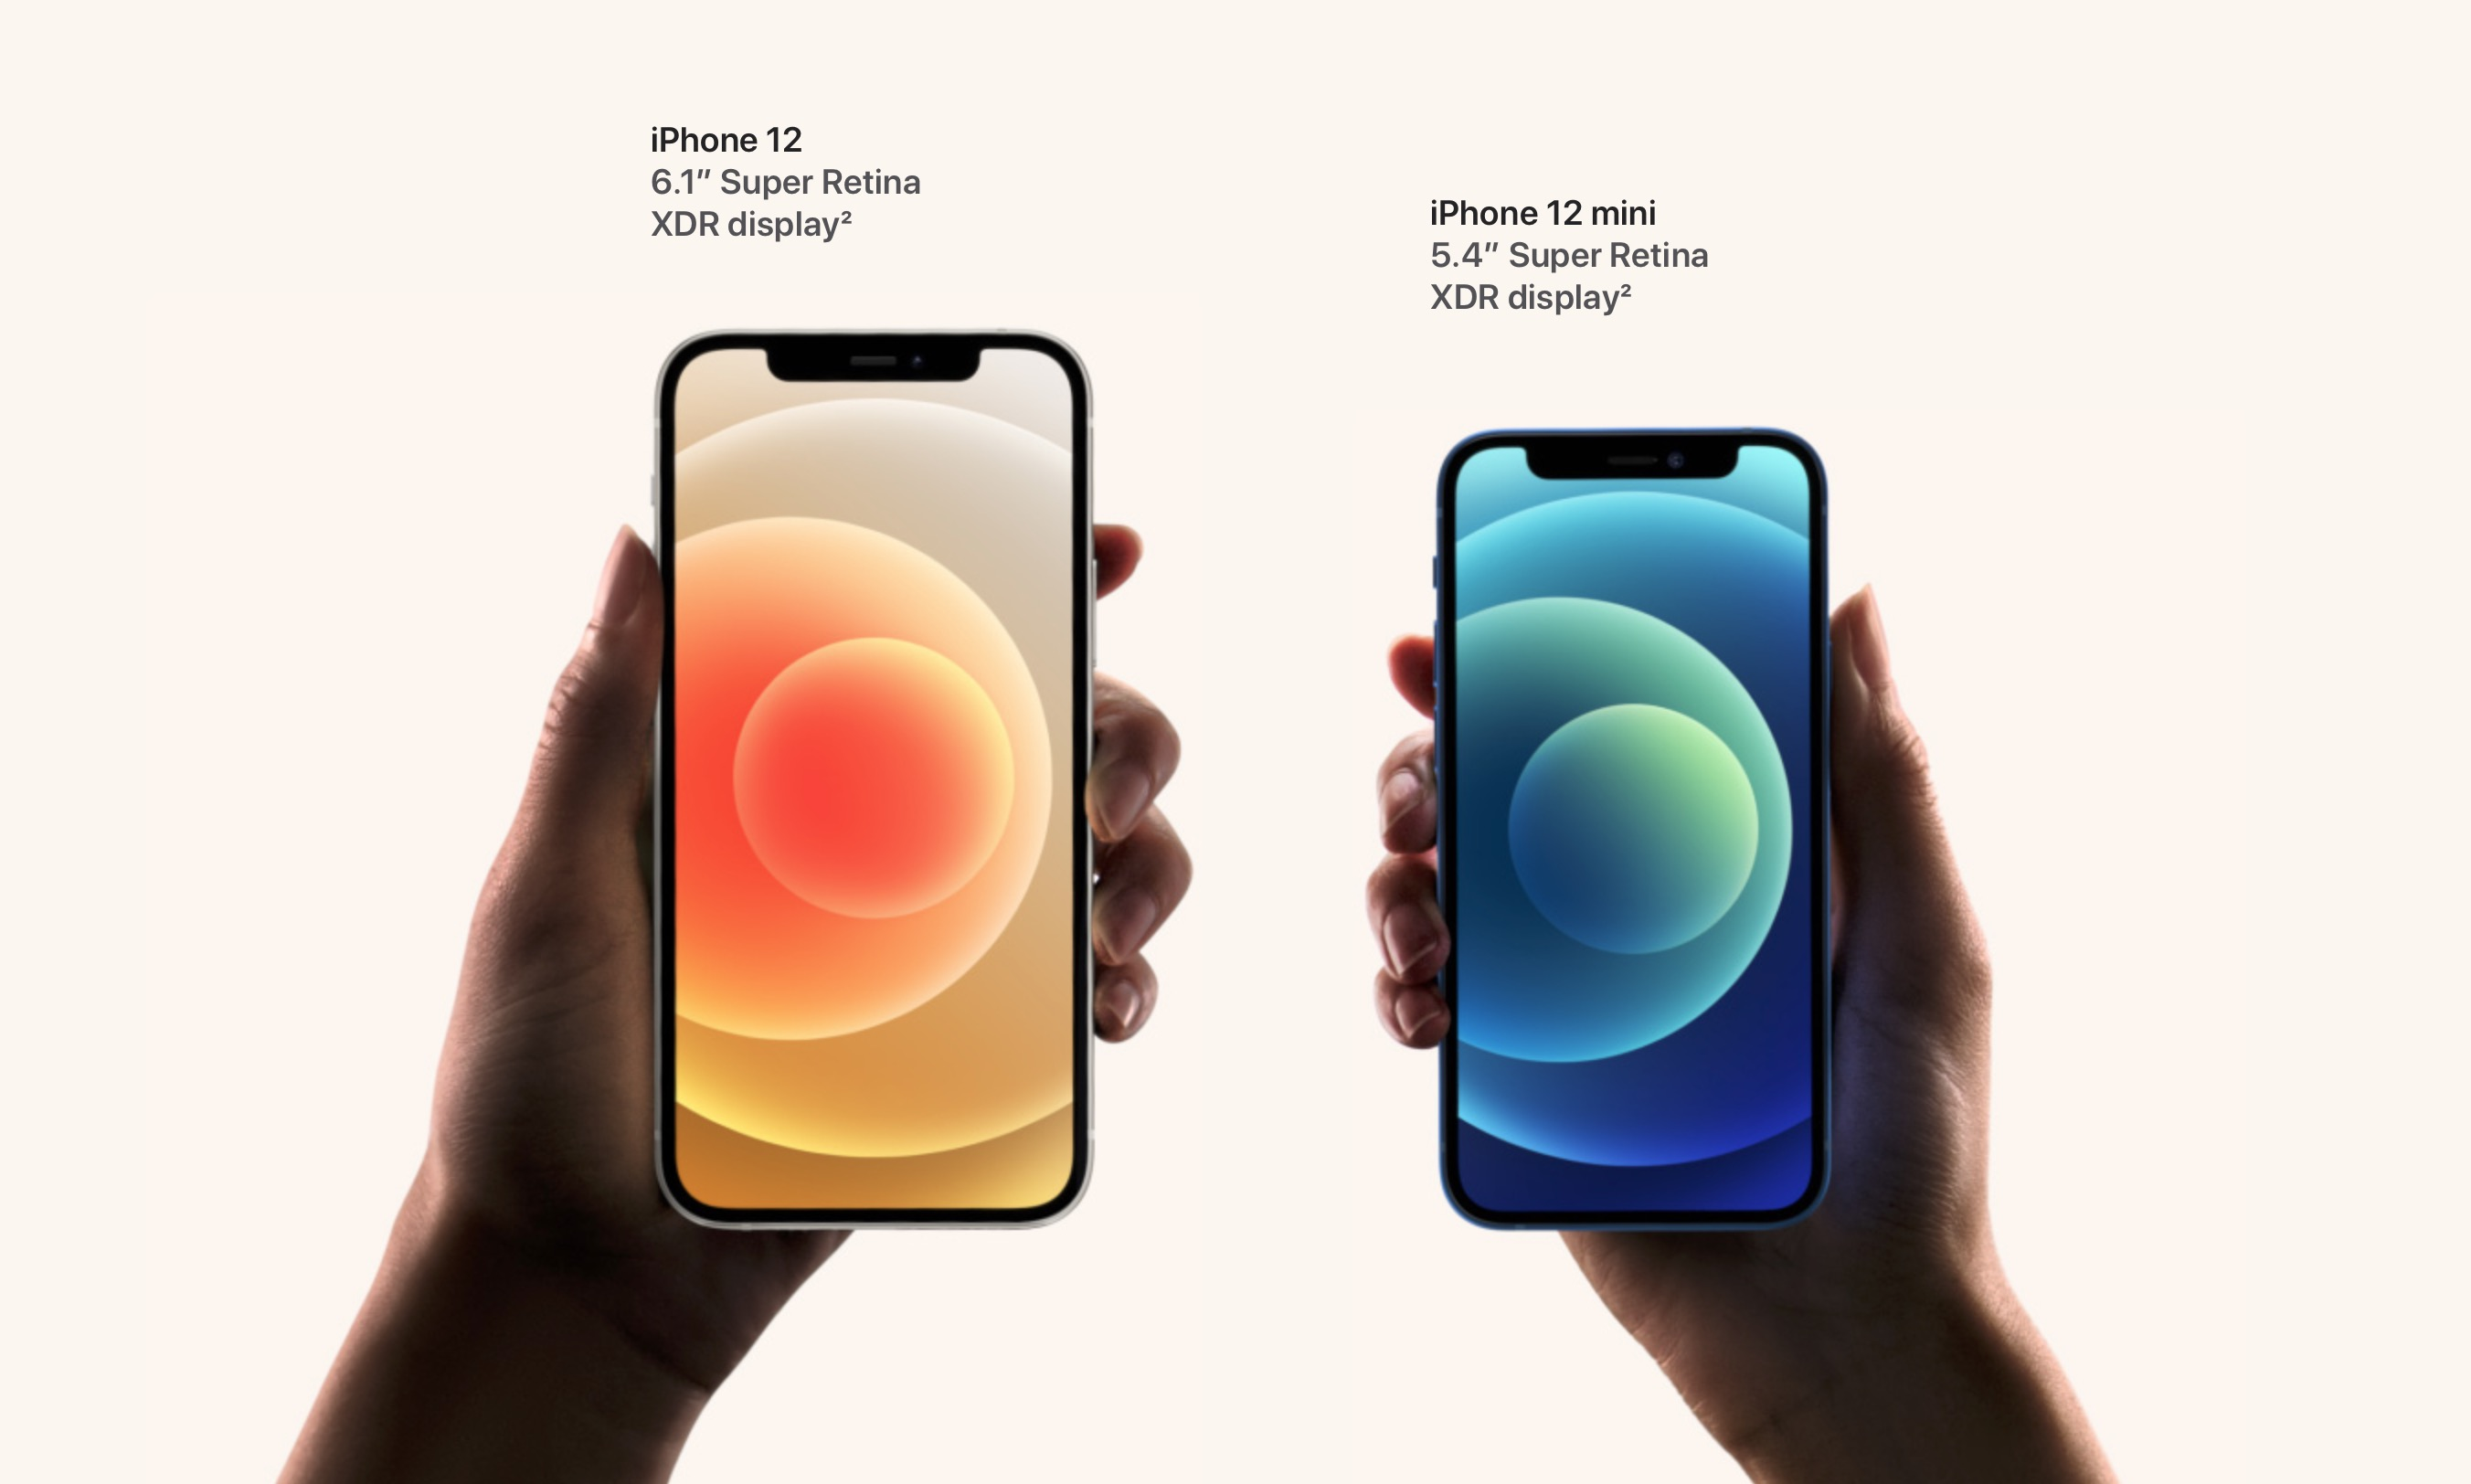 Apple S 5g Iphone 12 Iphone 12 Mini Devices Are Smaller And Lighter But Far More Powerful Digital Photography Review